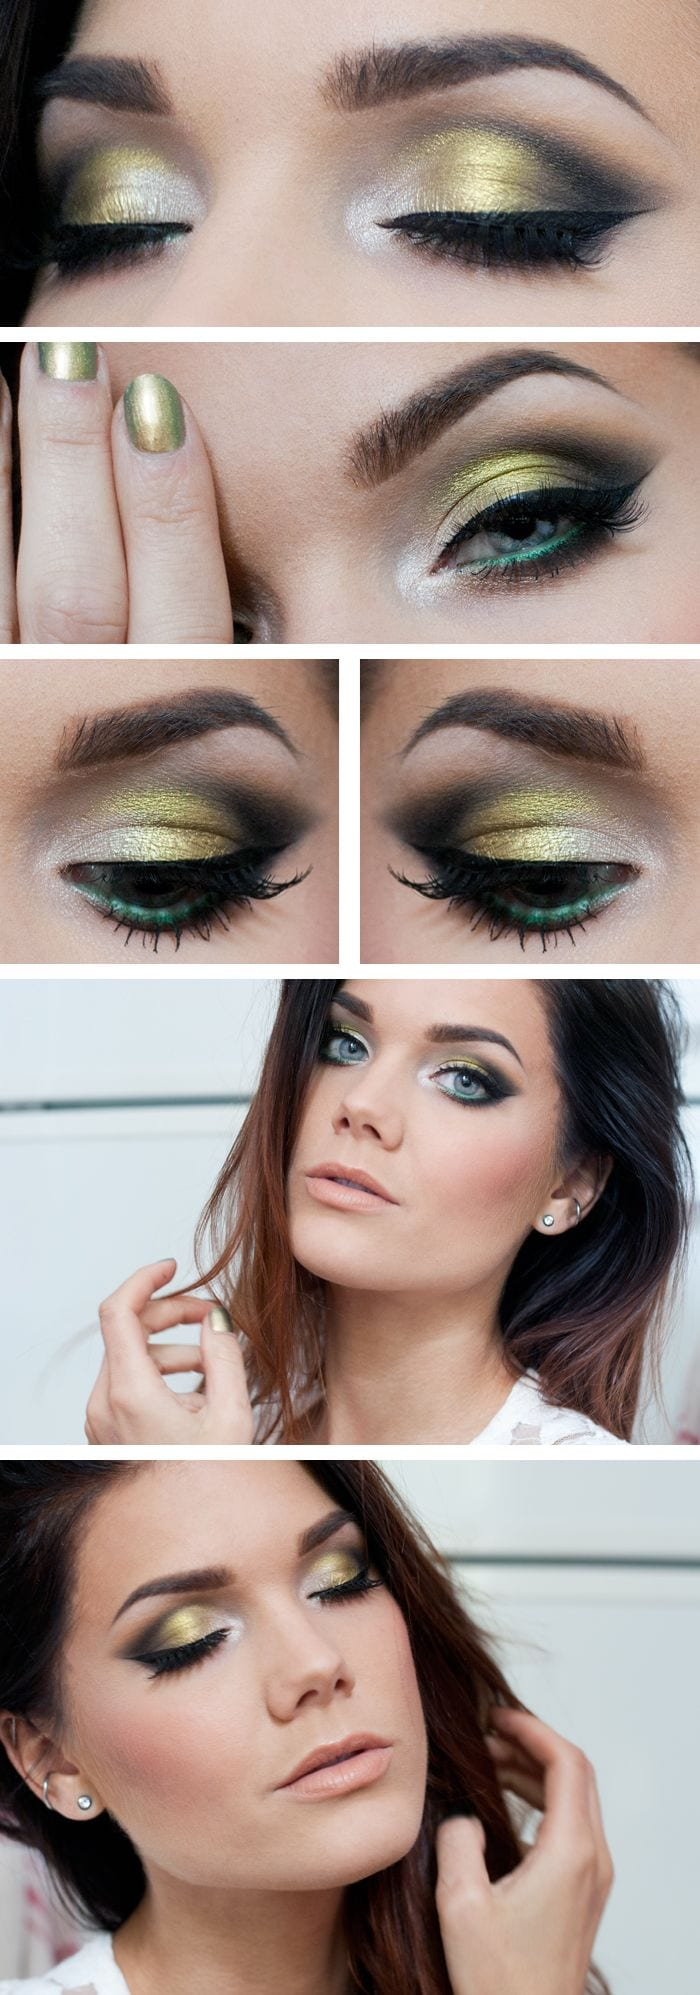 Best Eye Makeup Tips And Tricks For Small Eyes: Top 10 Simple Smokey Eye Makeup Tutorials For Green Eyes